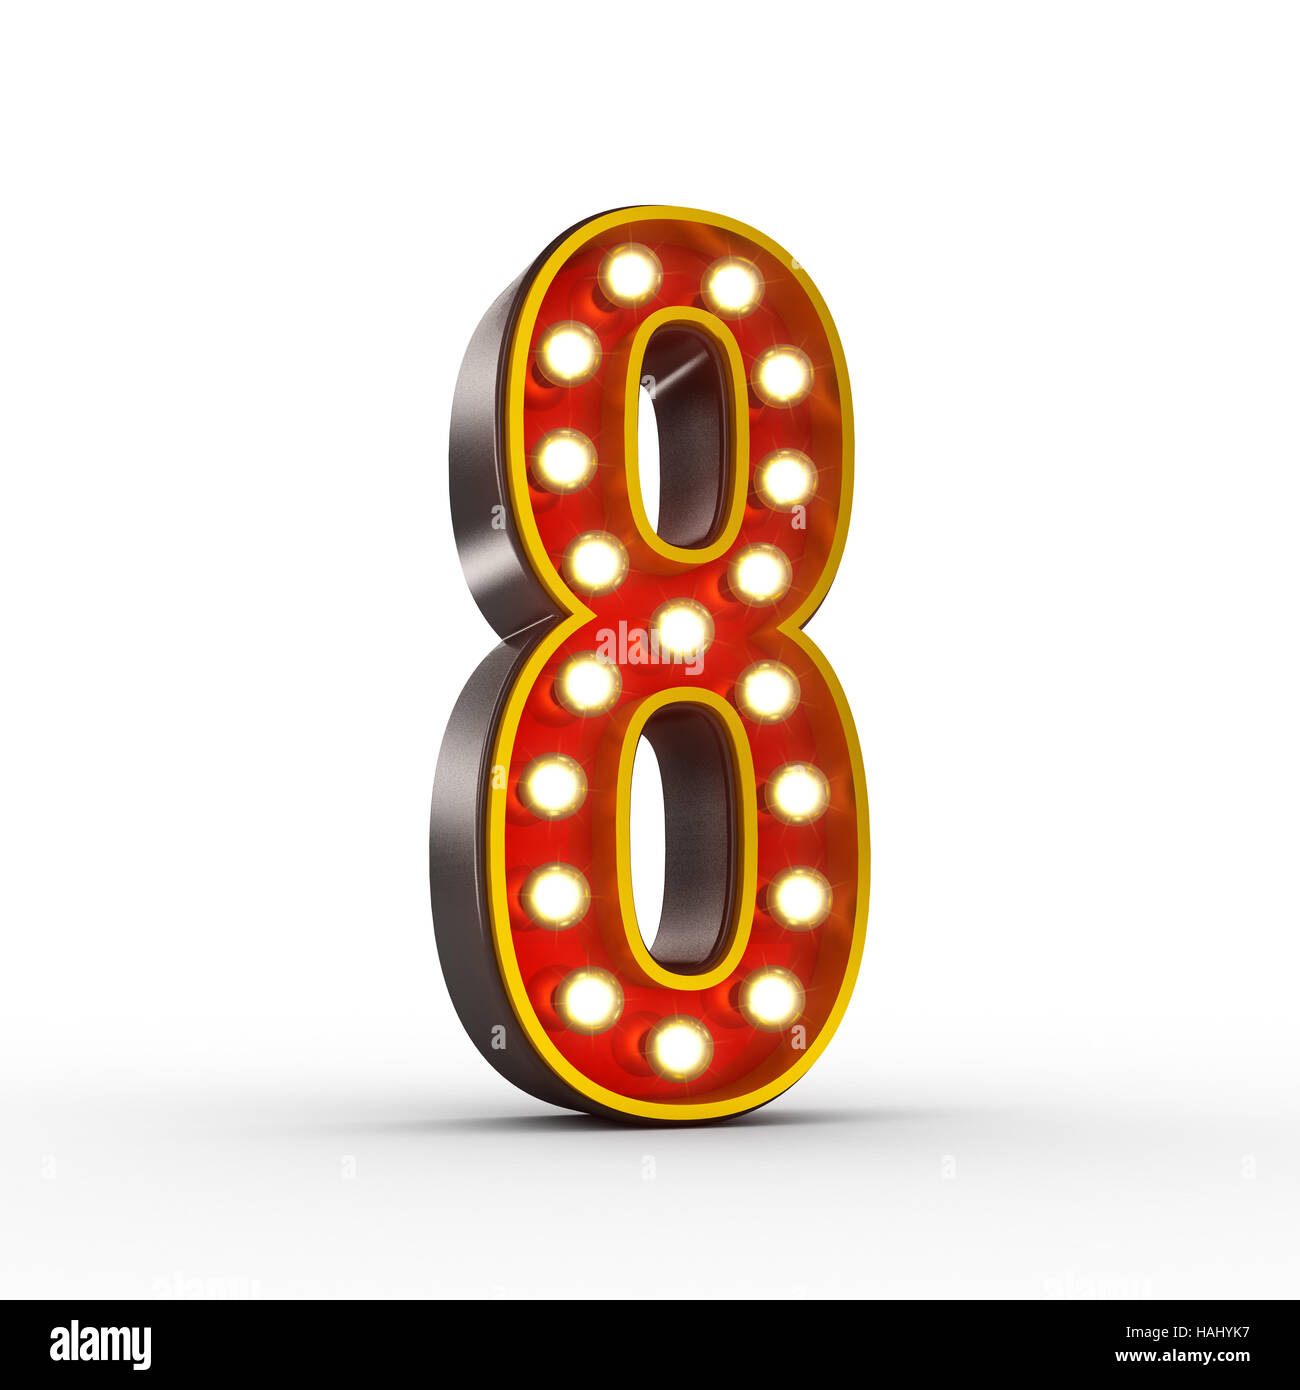 High quality 3D illustration of the number eight in vintage style with light bulbs illuminating it. Clipping path - Stock Image